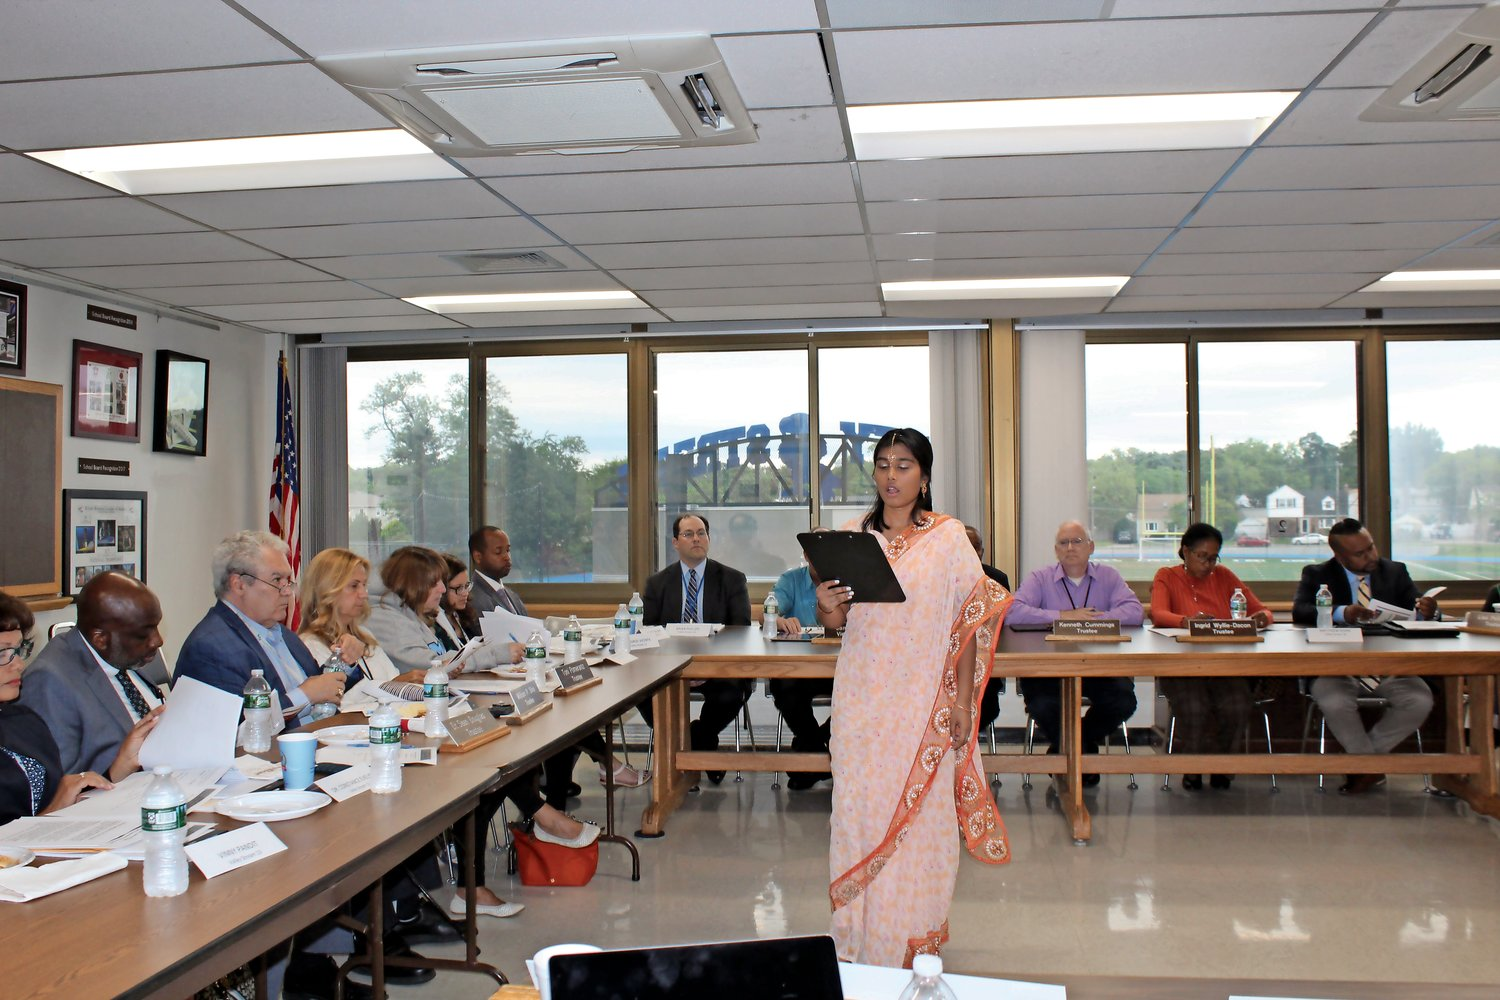 Devi Arjune asked members of all four Valley Stream Boards of Education to consider adding Diwali to the school calendar.